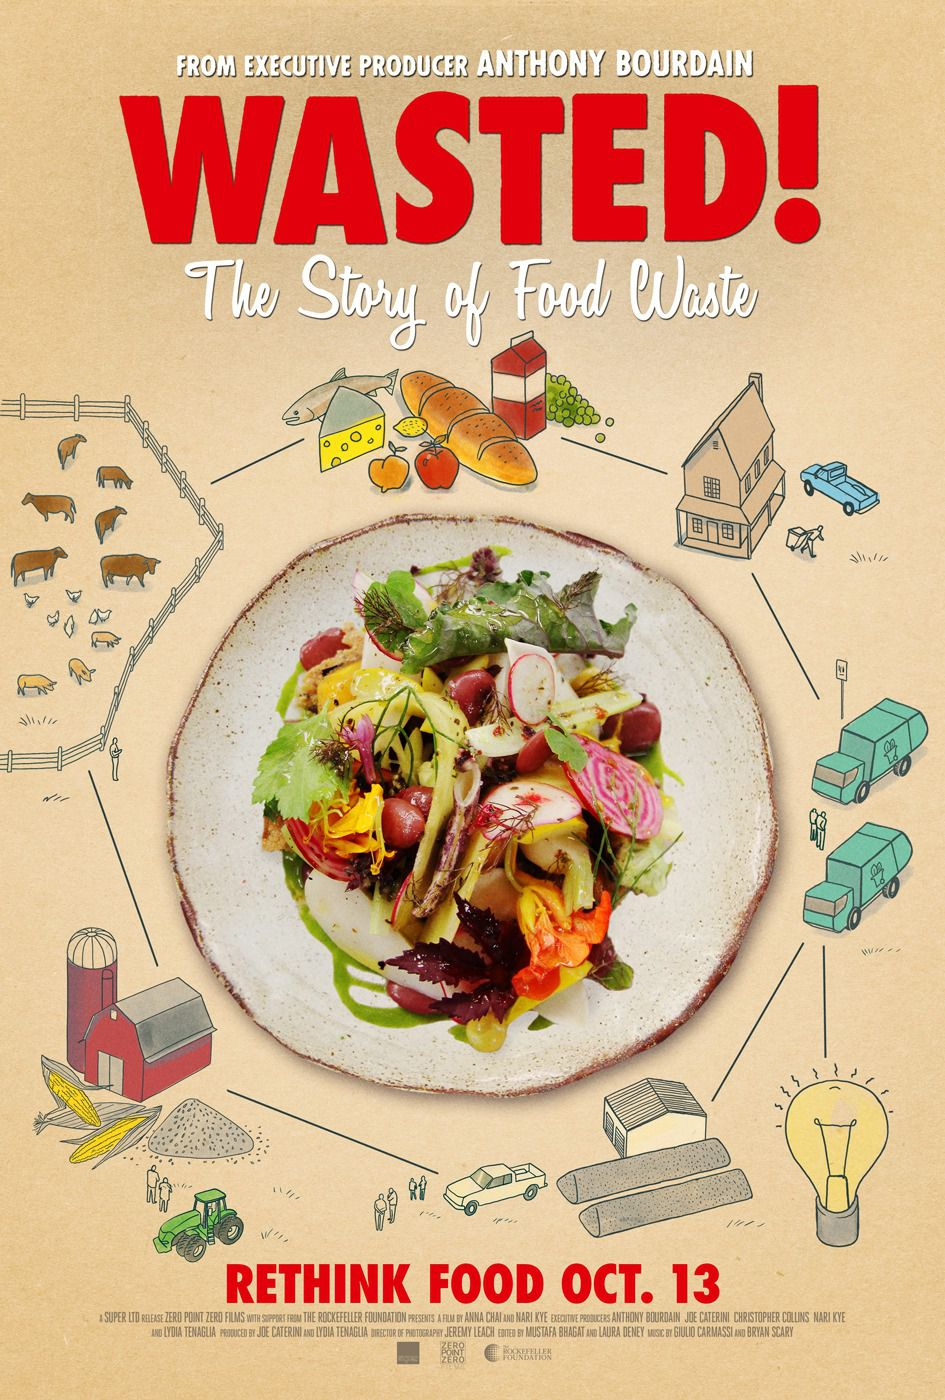 Wasted the Story of Food waste - film poster